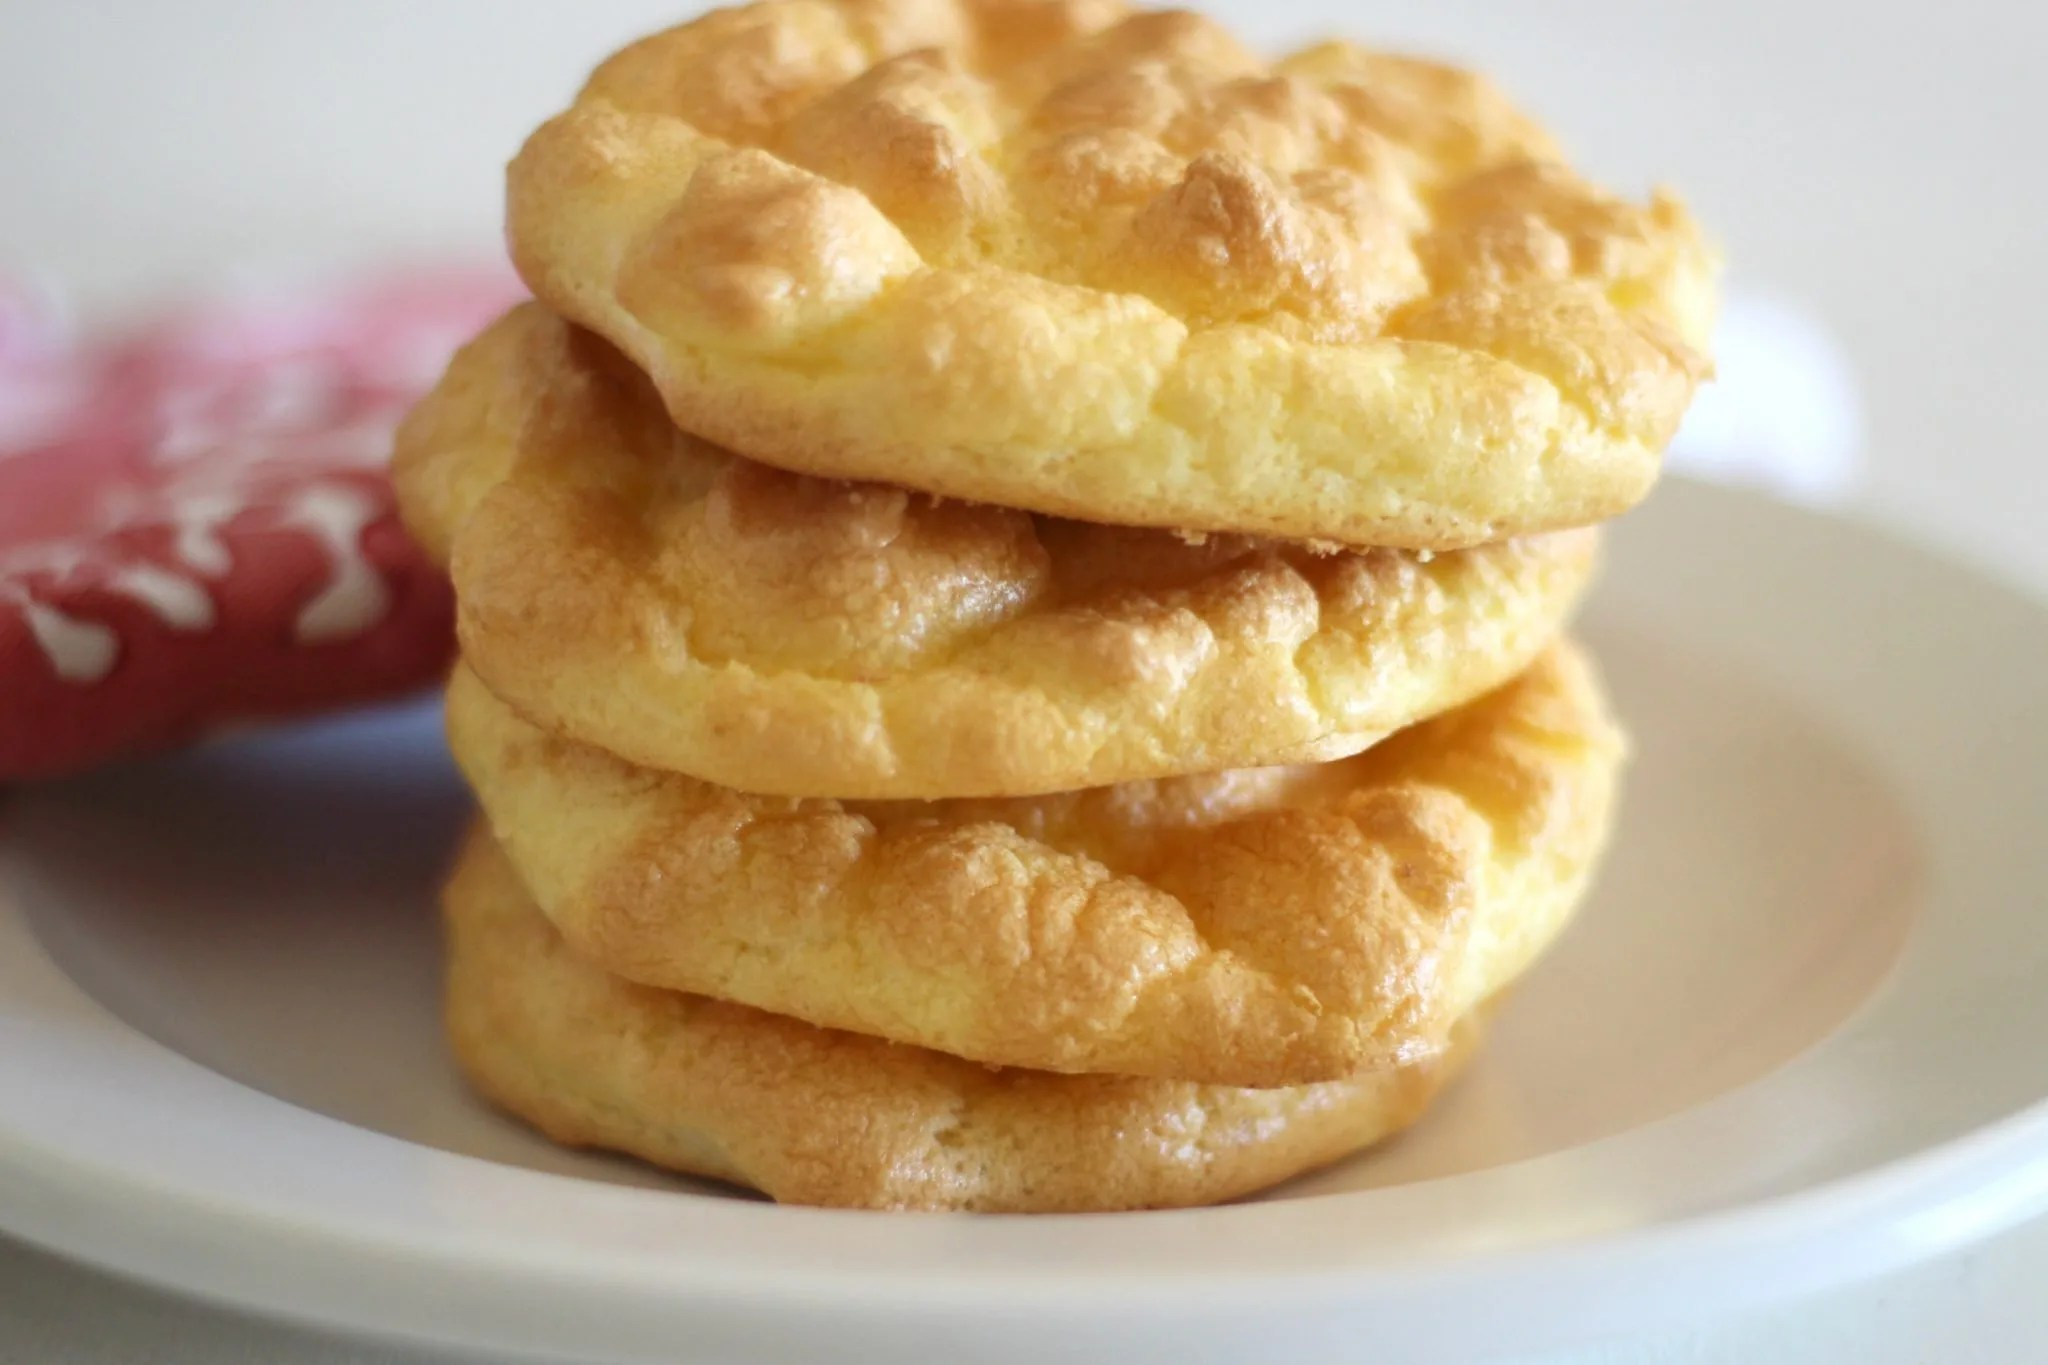 Cloud bread is a spongy egg based bread substitute that can either be made sweet or savory. Learn how to make basic cloud bread!